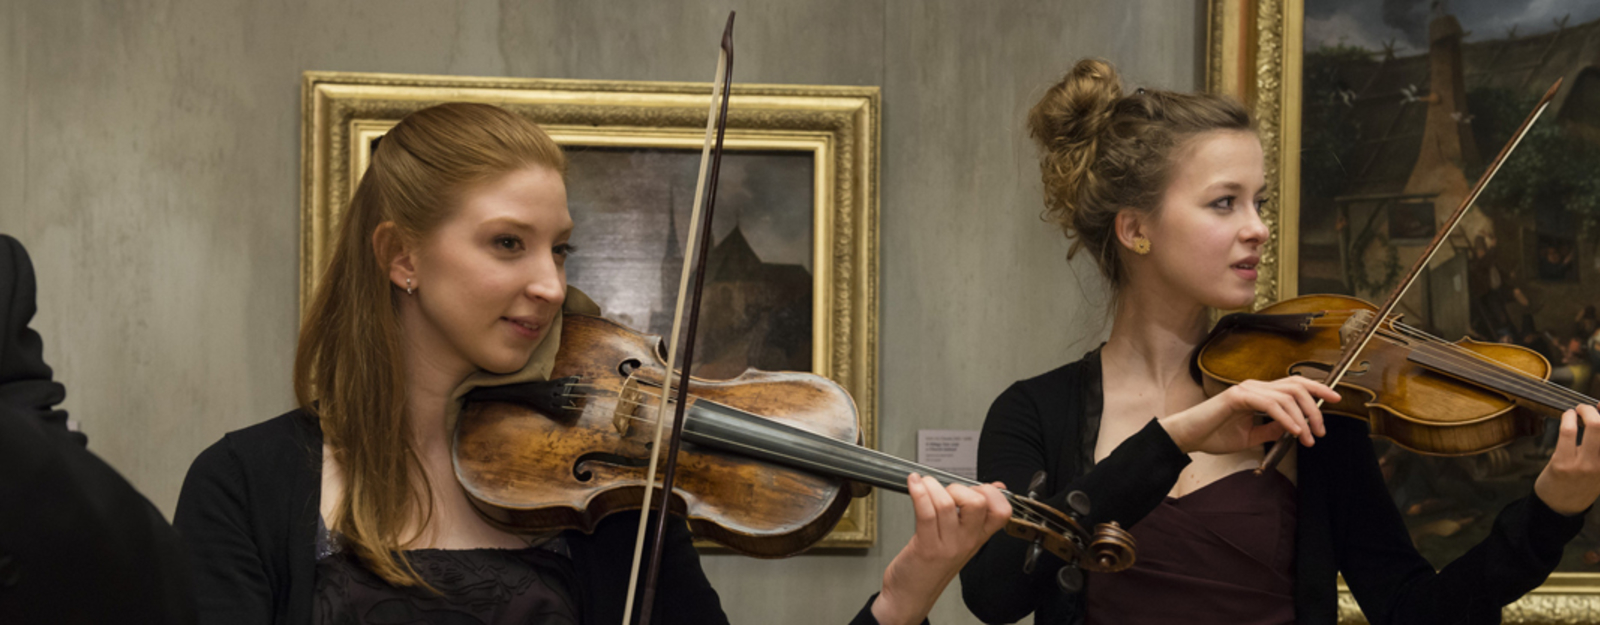 Photograph of two women playing the violin